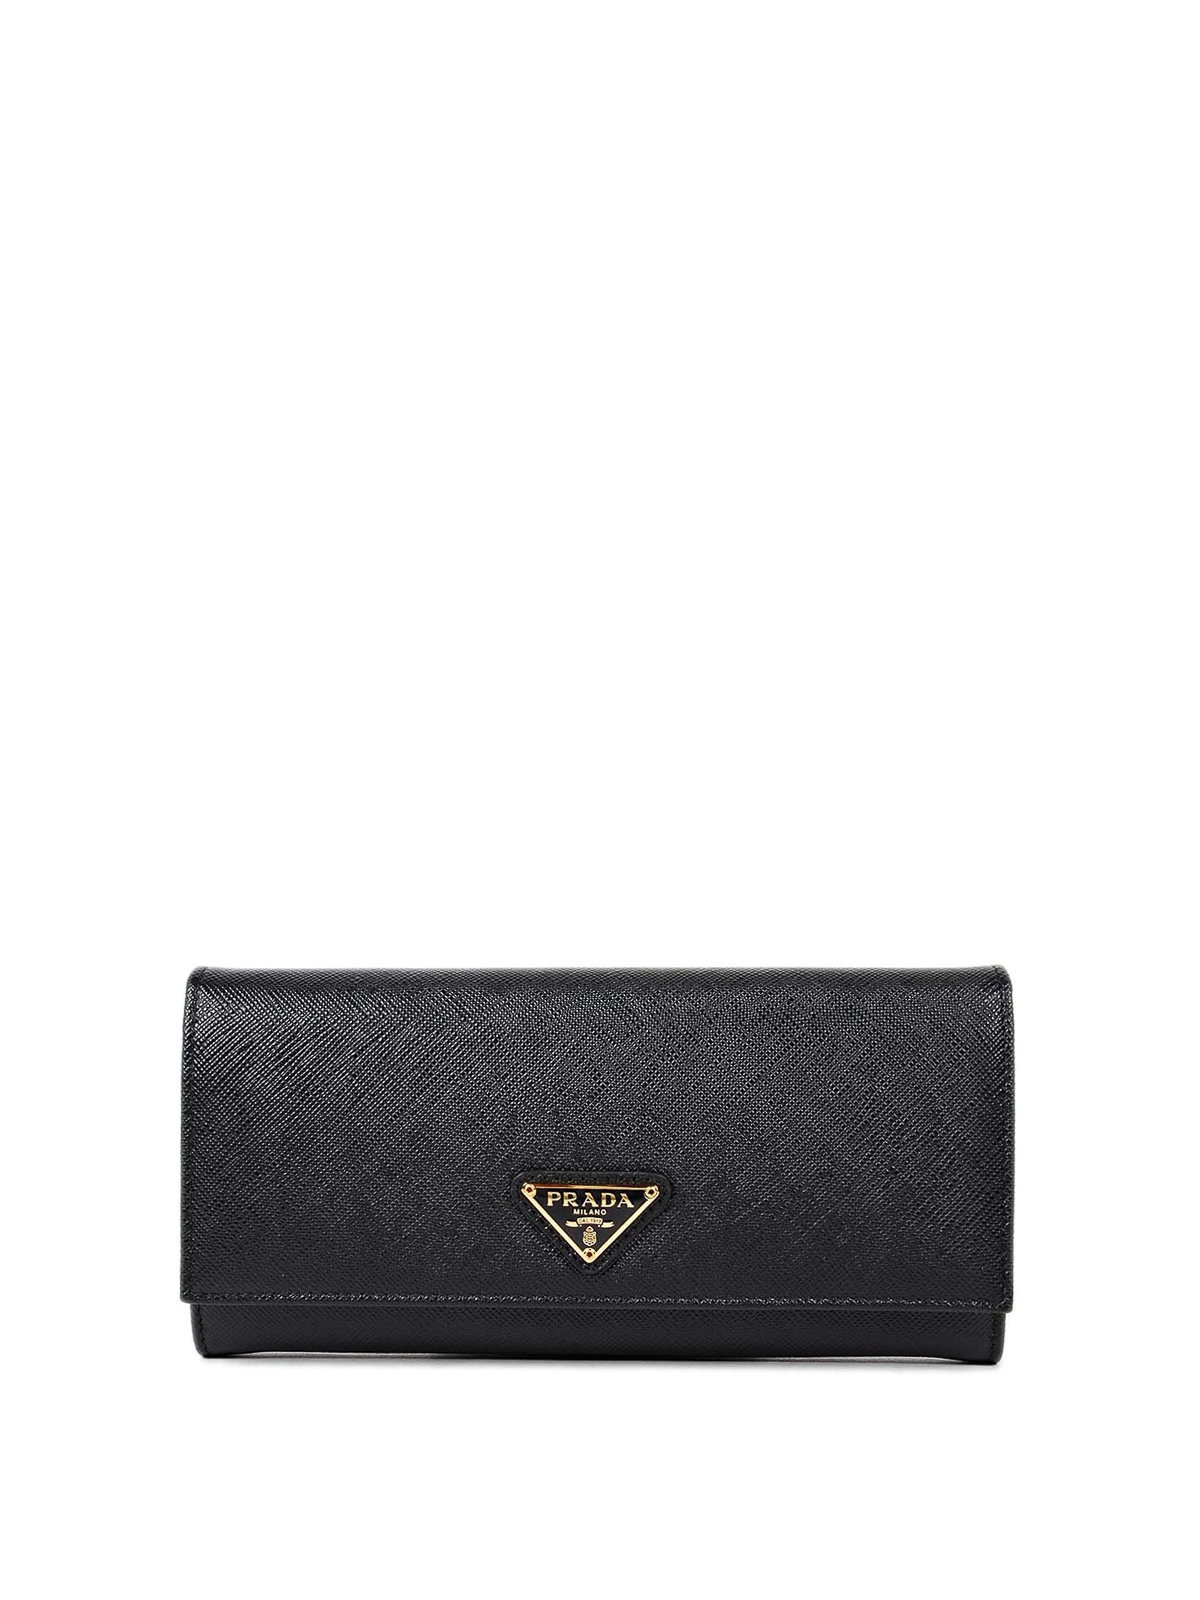 9048c45b77ce ... best price prada wallets purses saffiano leather flap wallet 50df1 15d37